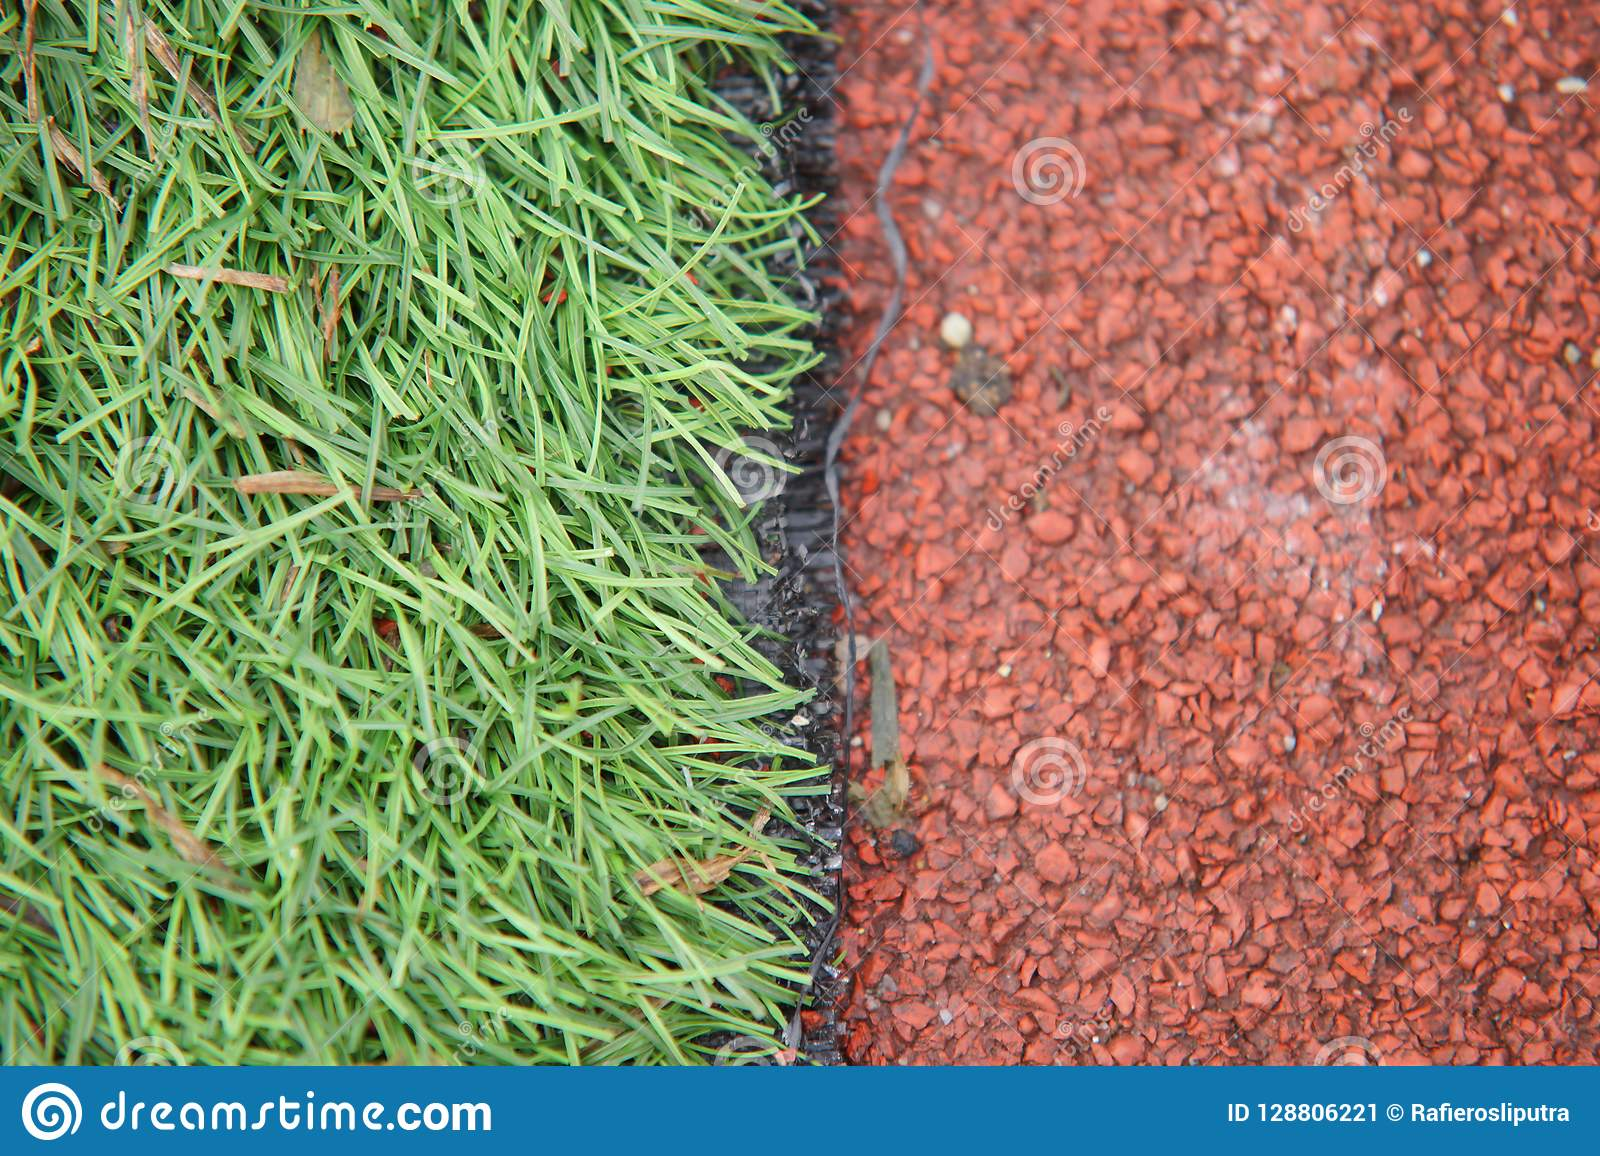 Photo of closeup artificial track and field with green grass combined with artificial grass